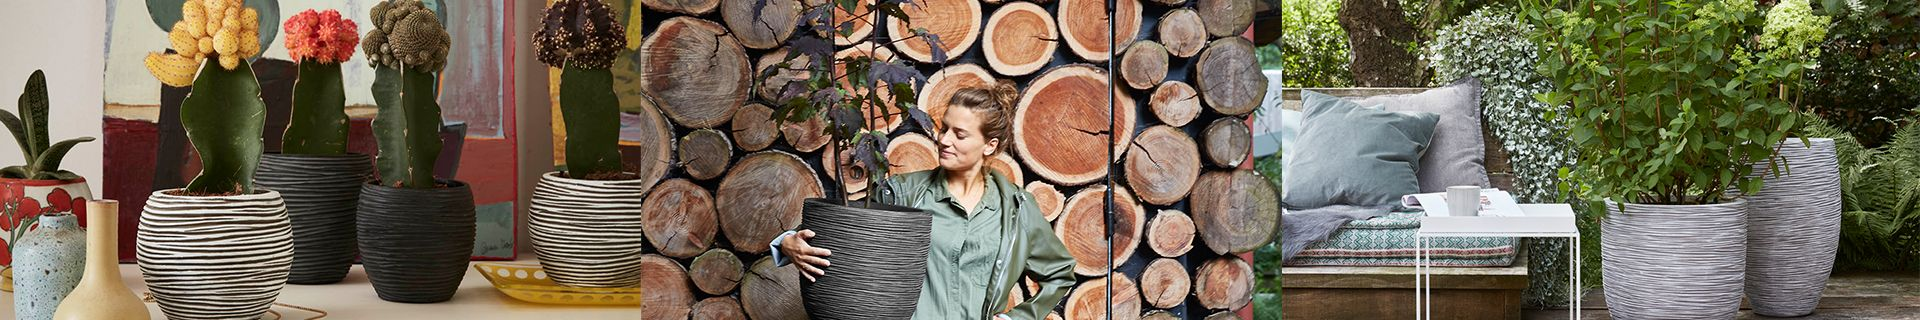 Woman holding plant pot. Assortment of cacti in small pots. Outdoor area with table, chair and plant.